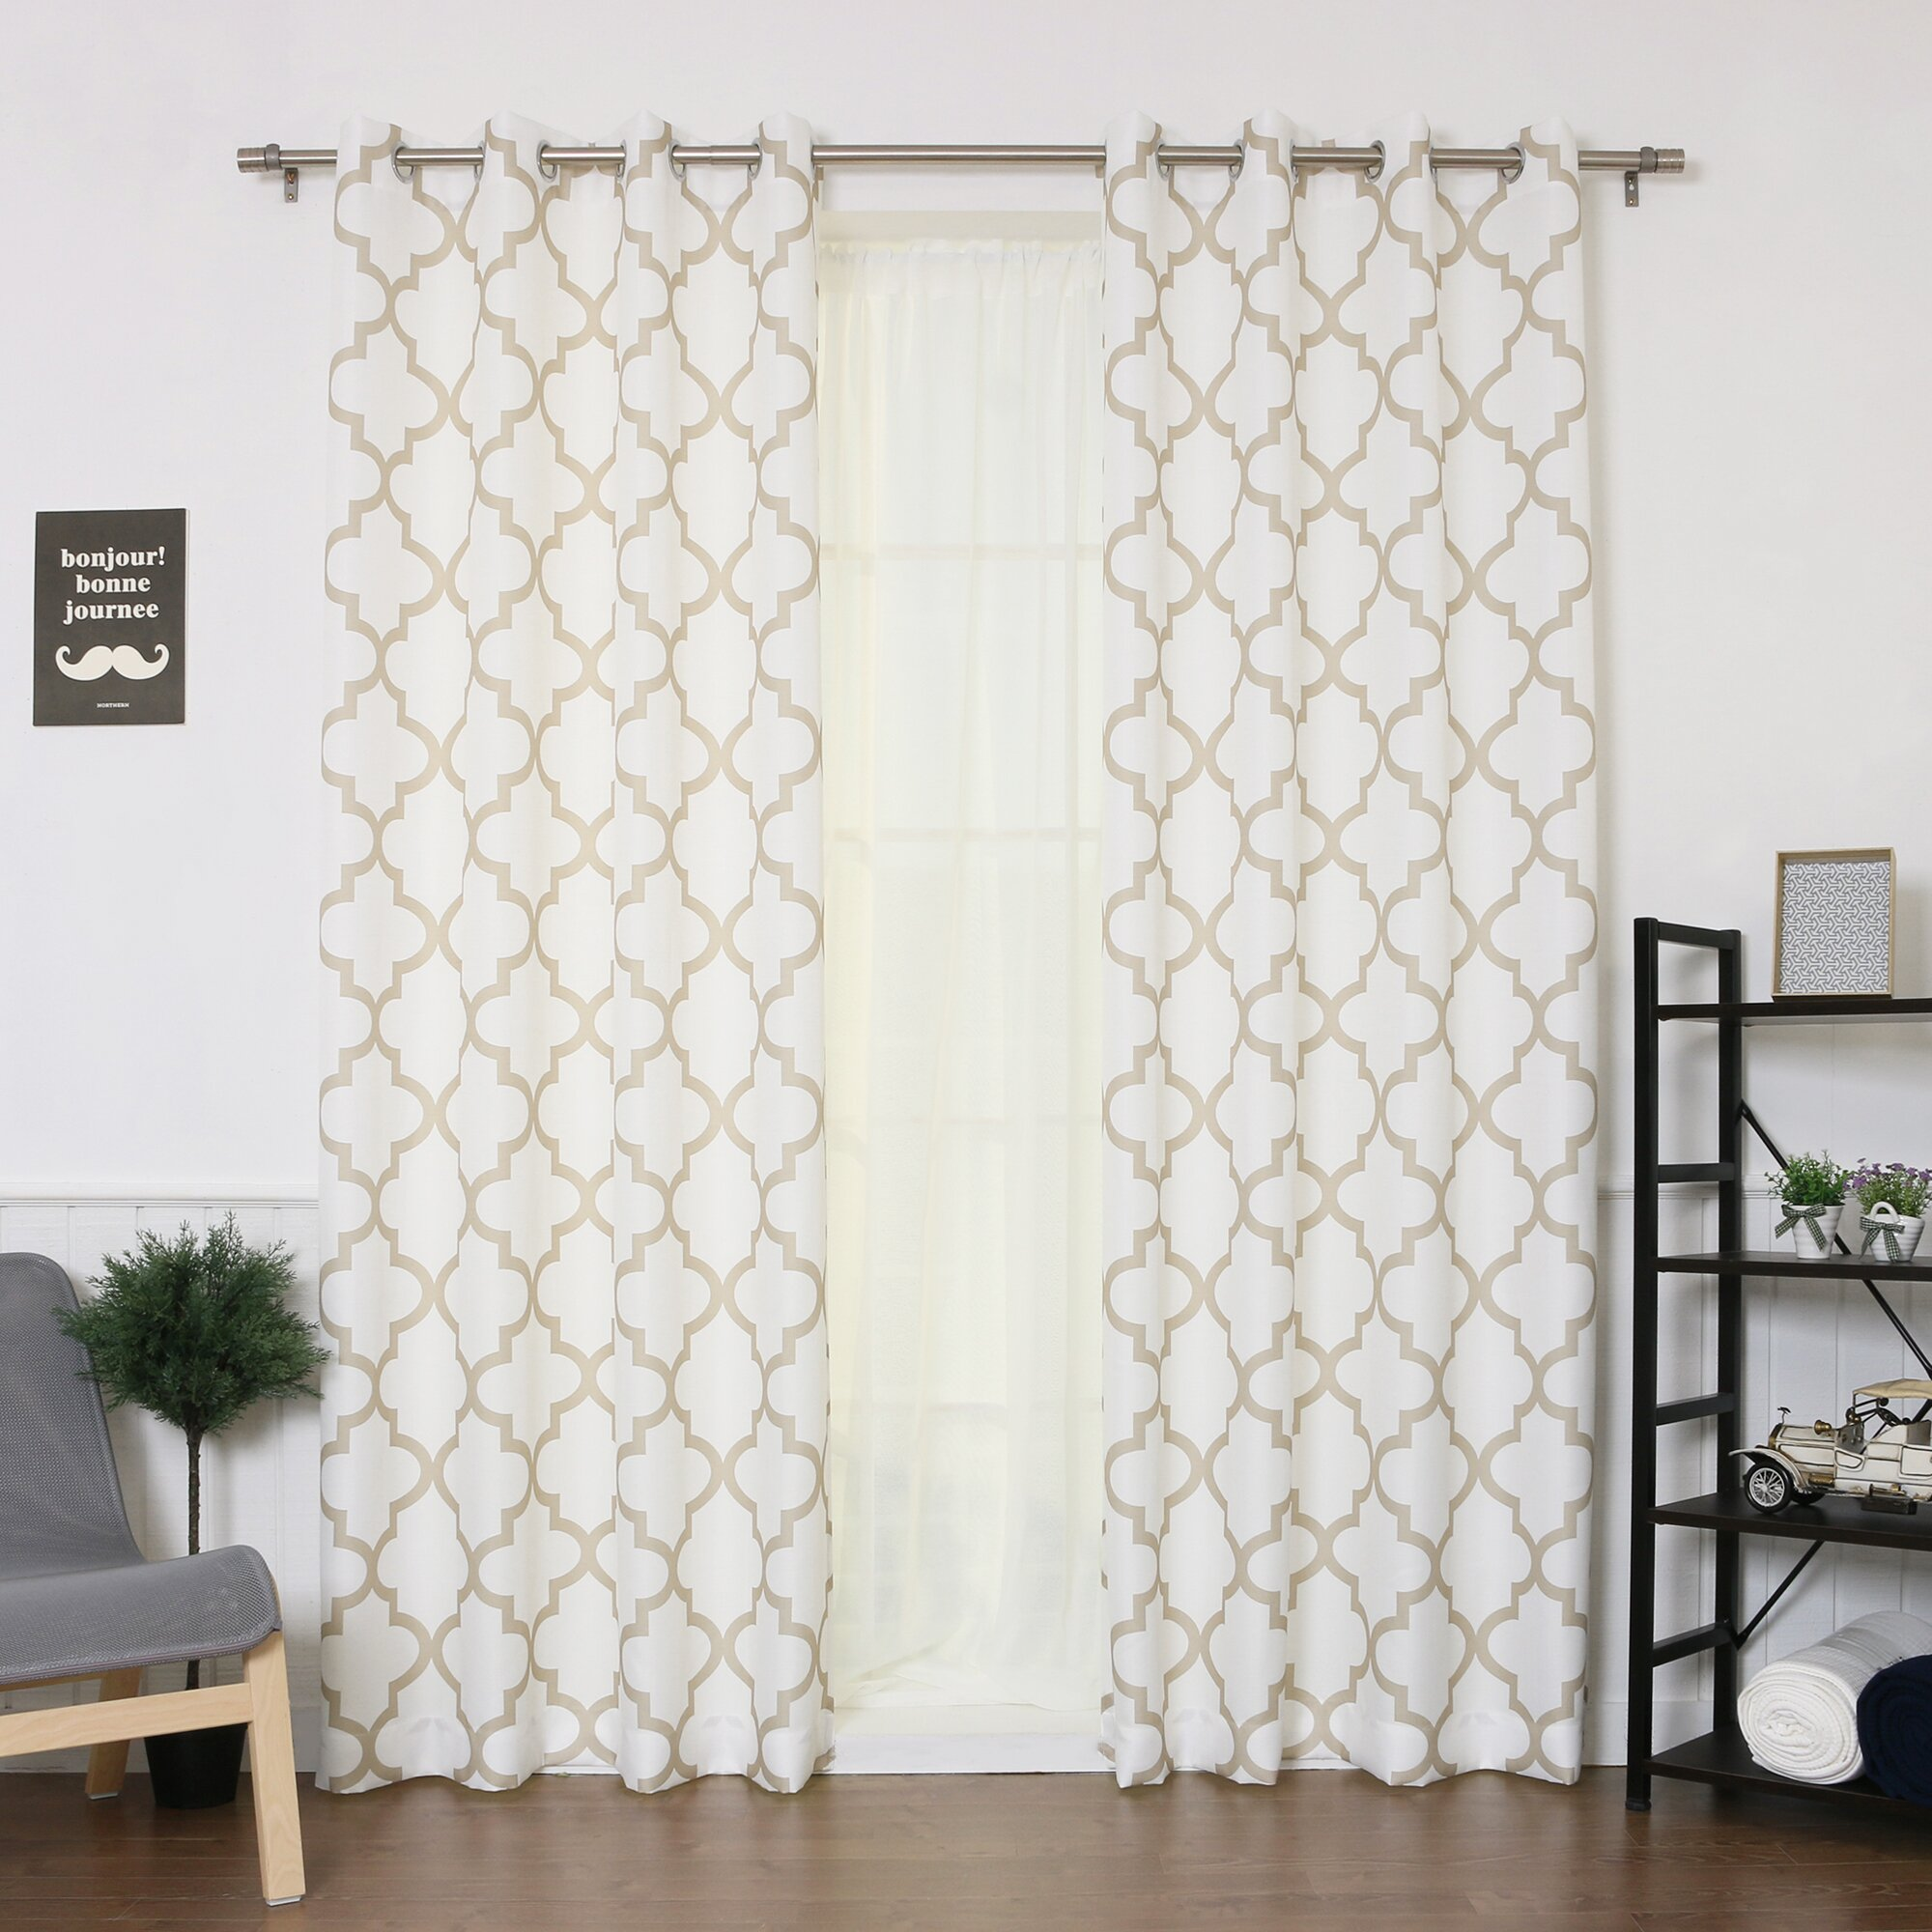 Best home fashion inc oxford basketweave curtain panels for Home drapes and curtains